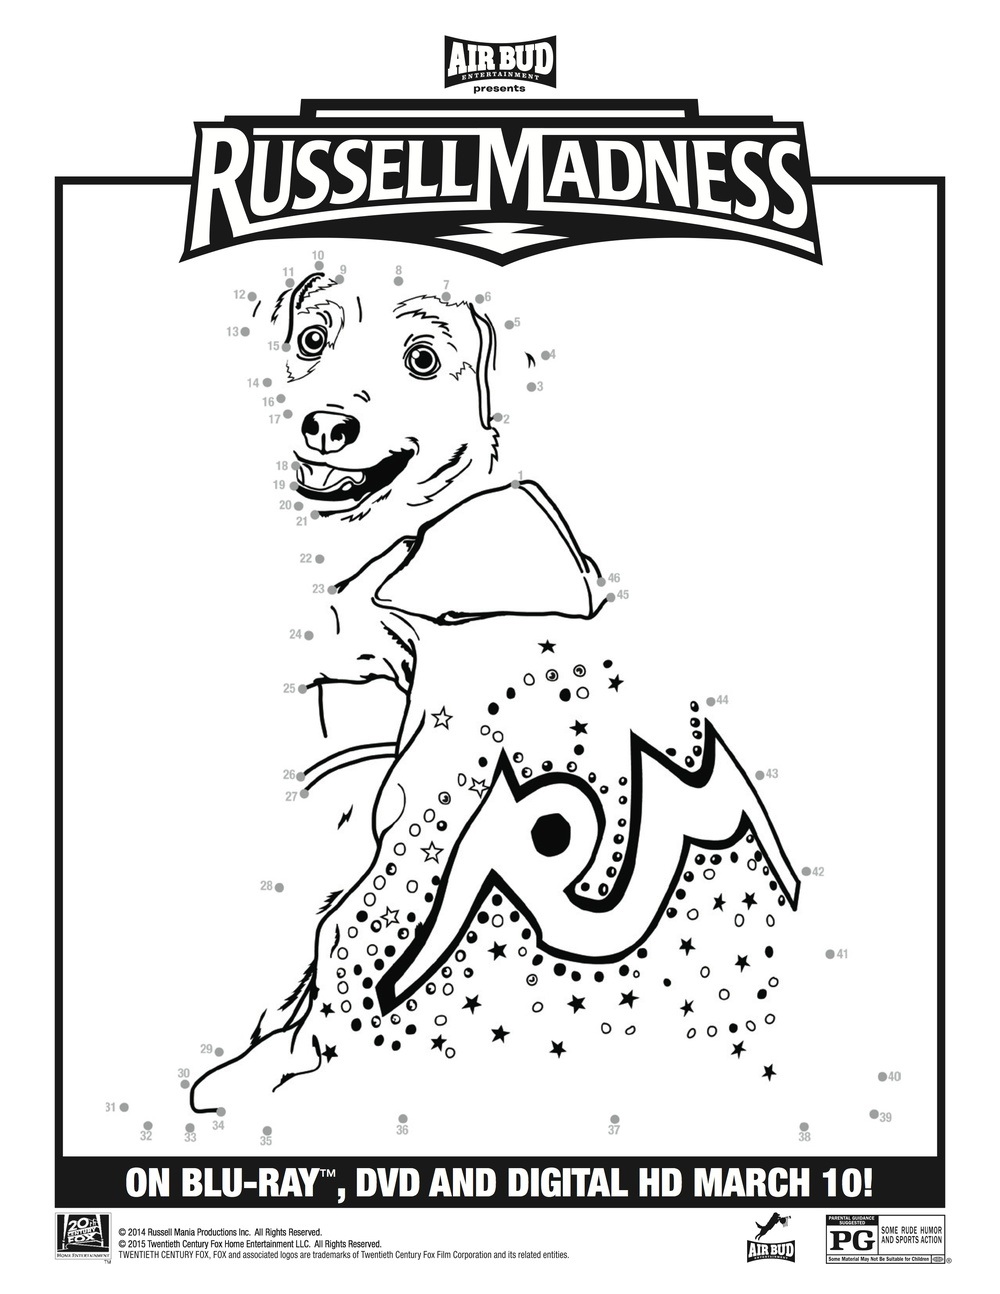 Russell Madness-connect dots.jpg